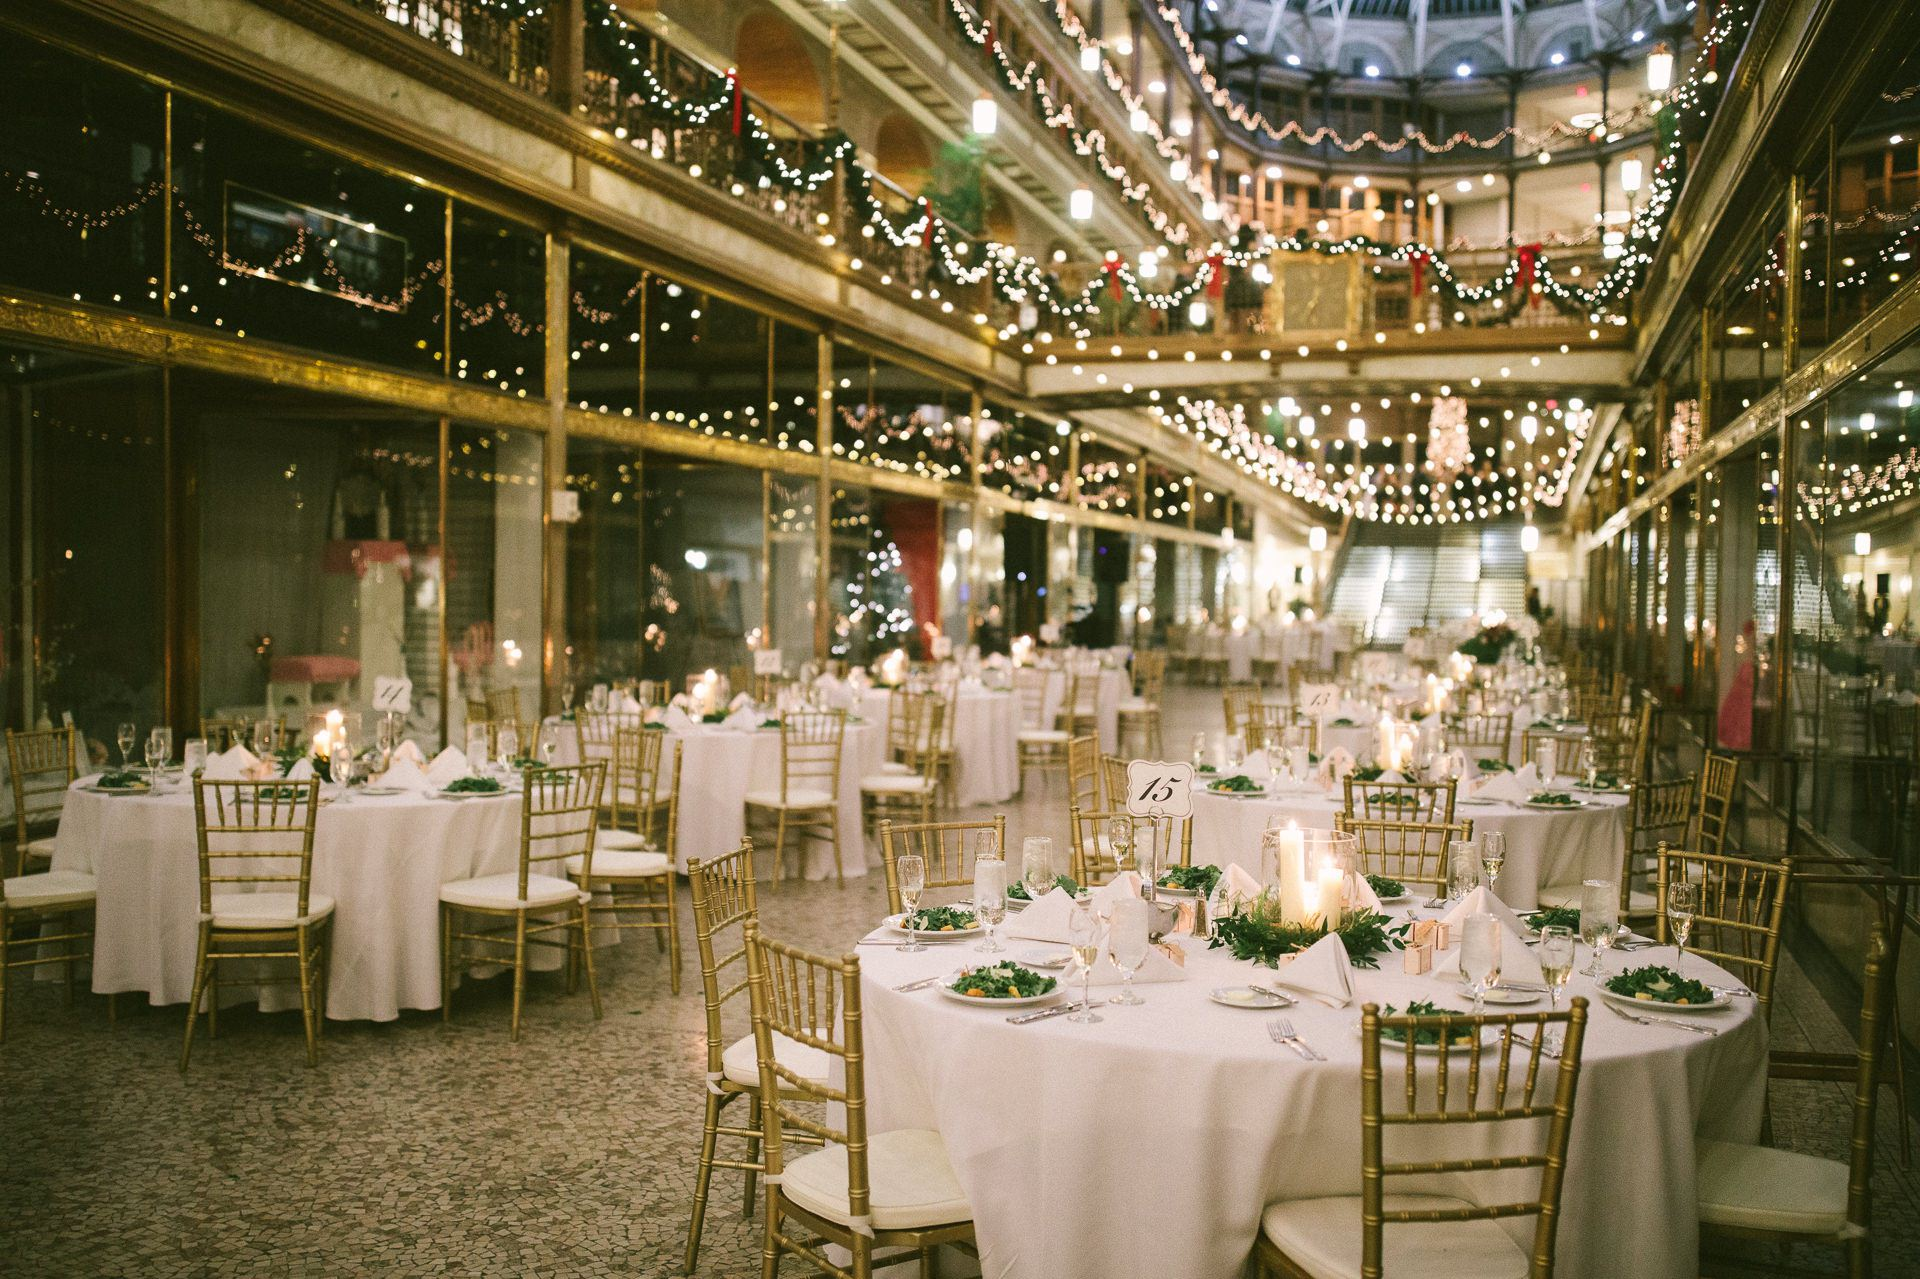 Hyatt Old Arcade Wedding Photographer in Cleveland 2 10.jpg